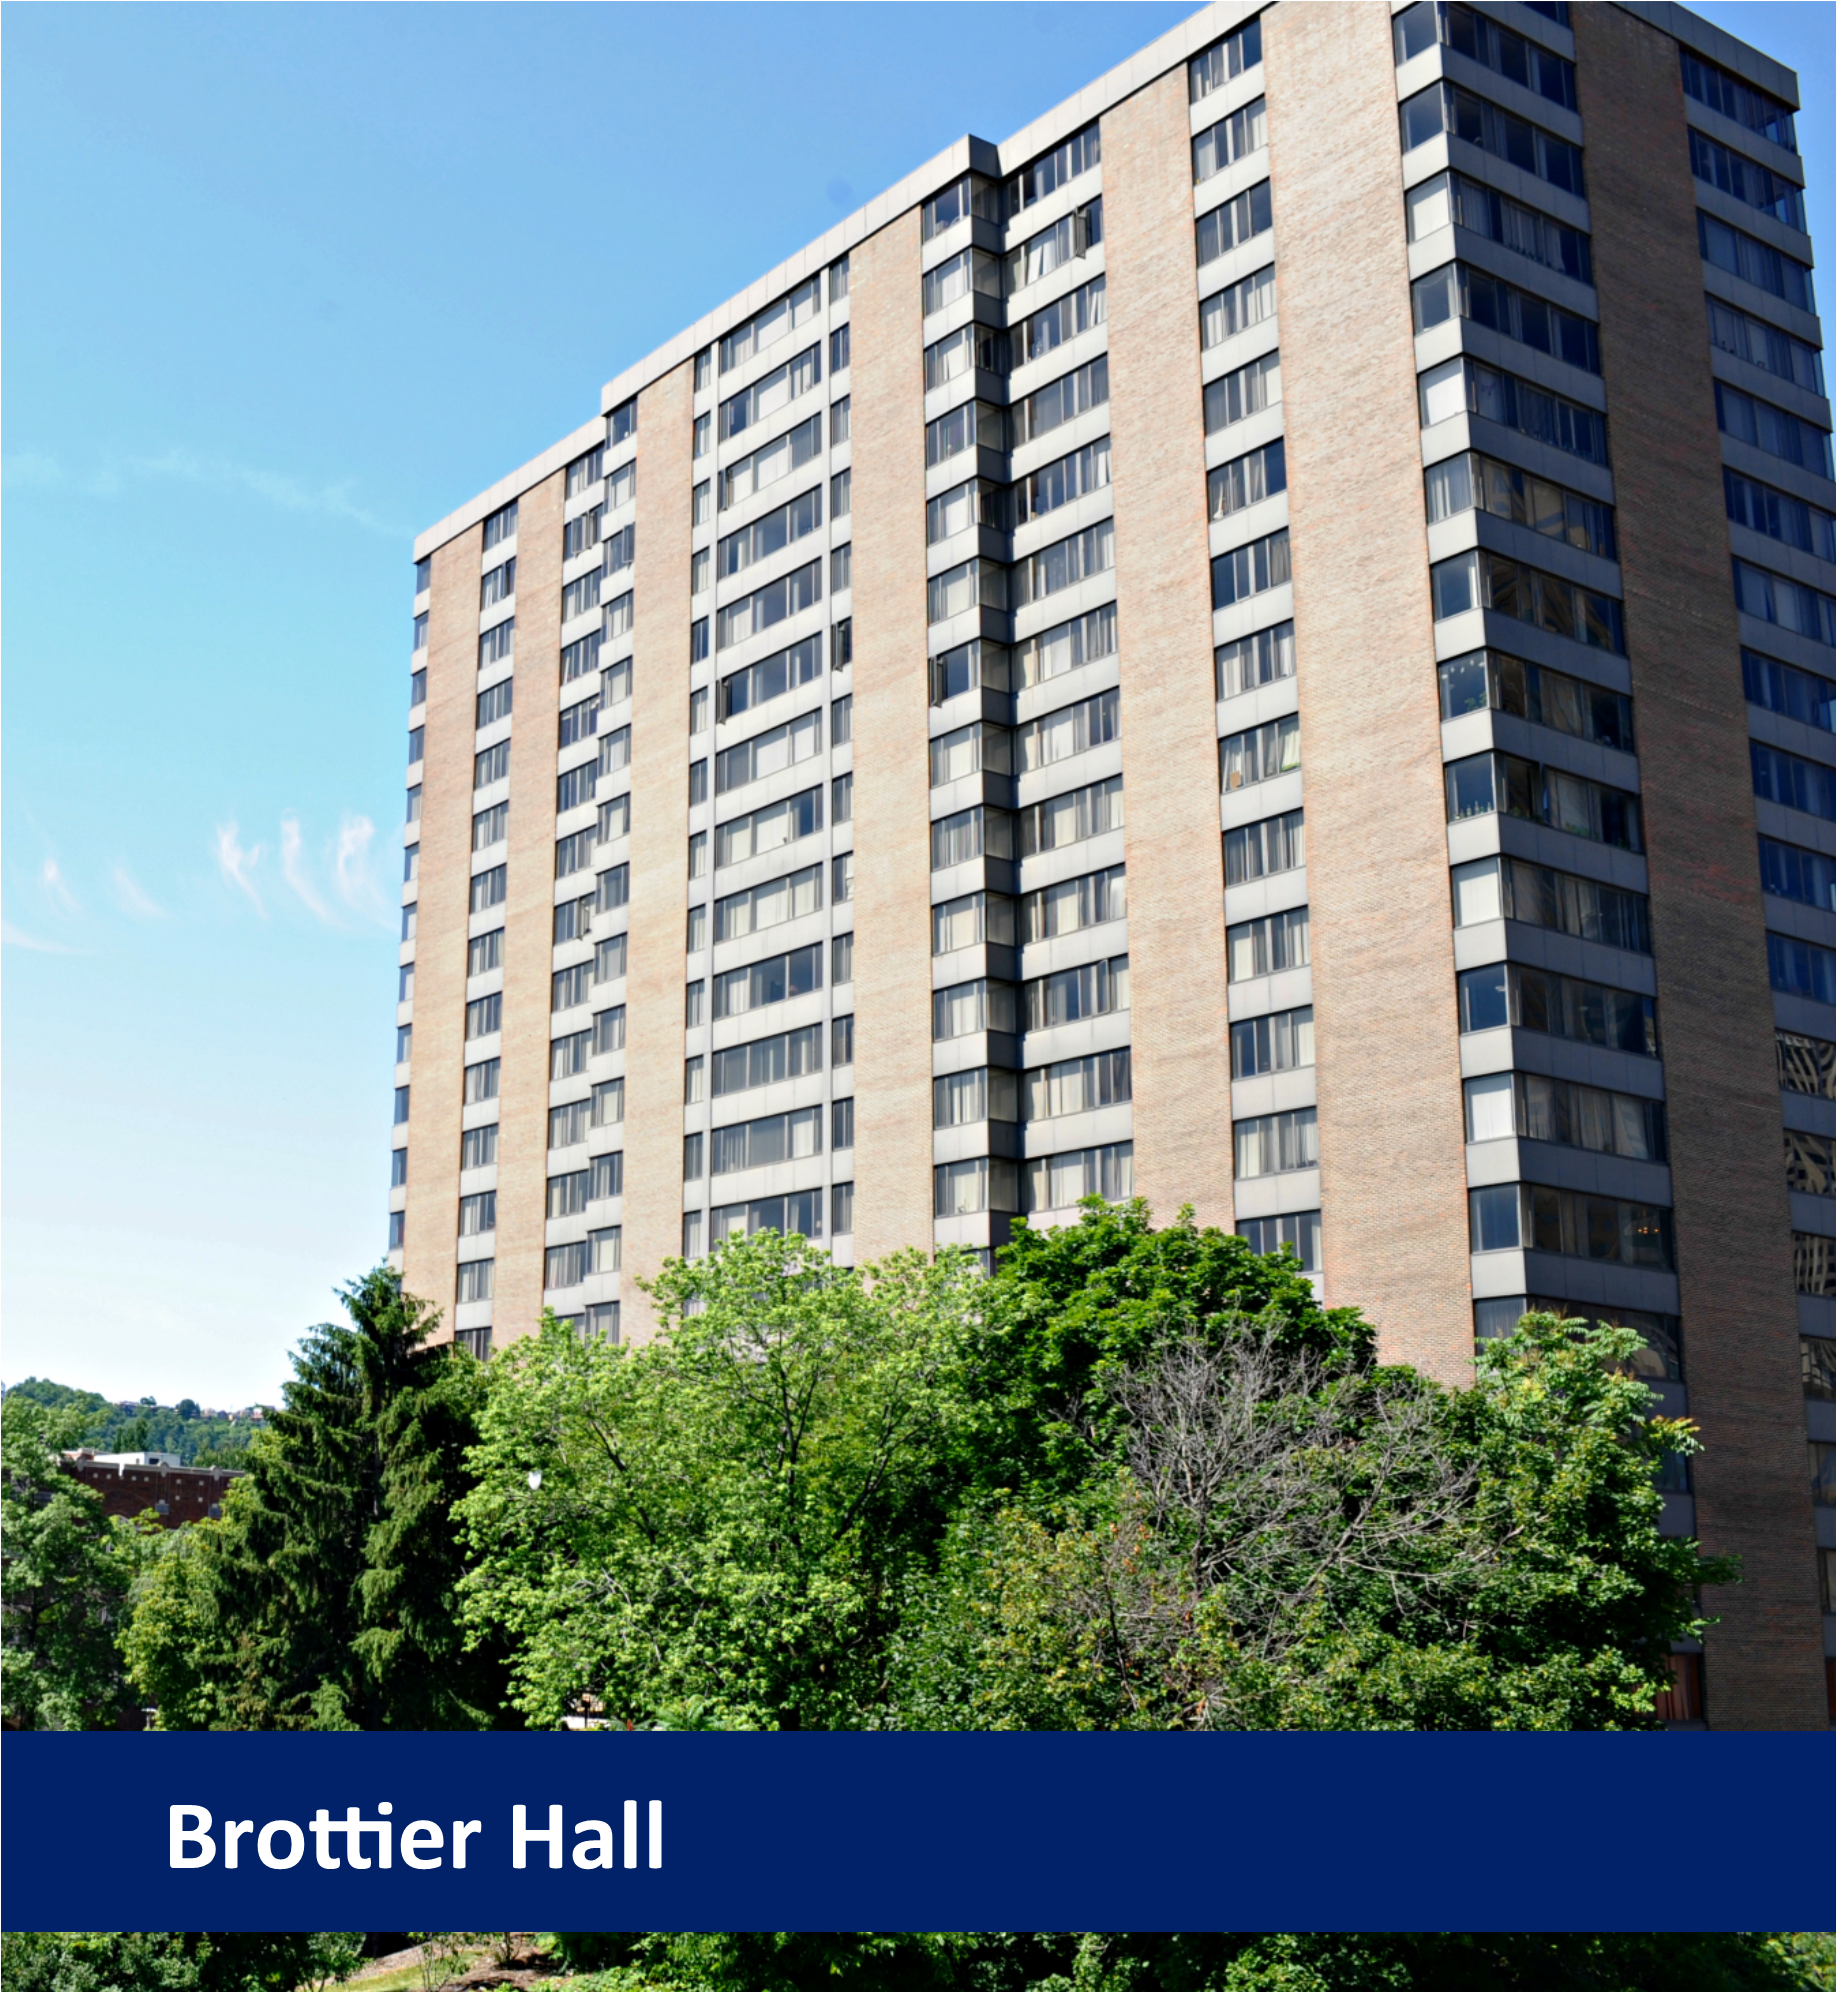 Brottier Hall